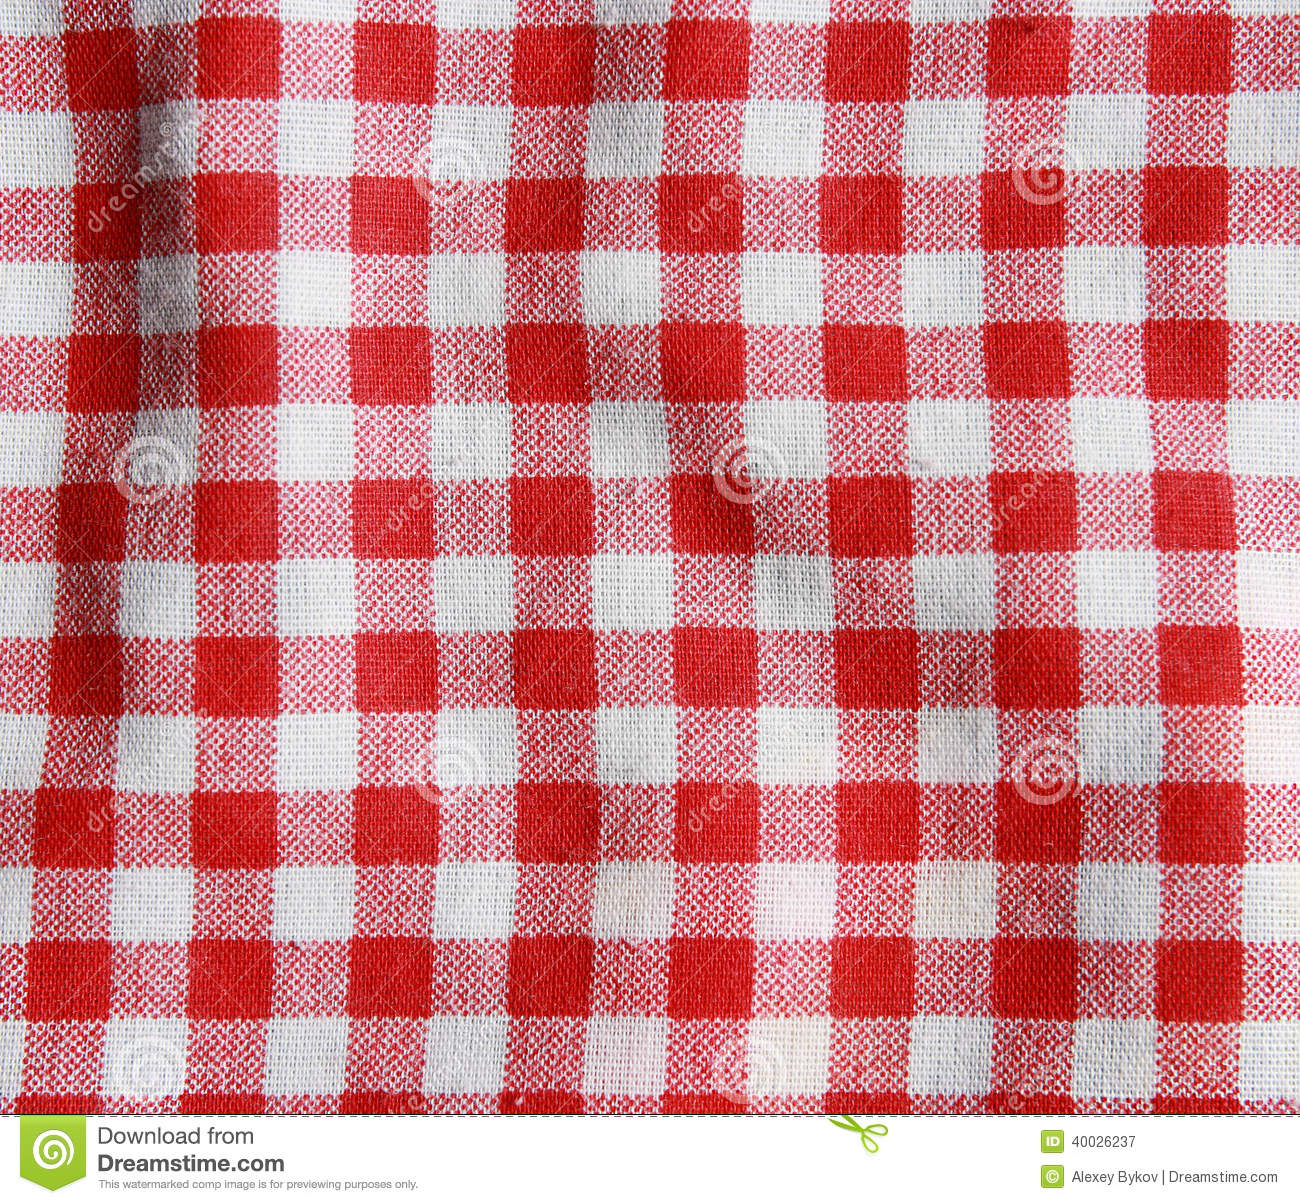 a095cdc651f Texture Of A Red And White Checkered Picnic Blanket. Stock Image ...